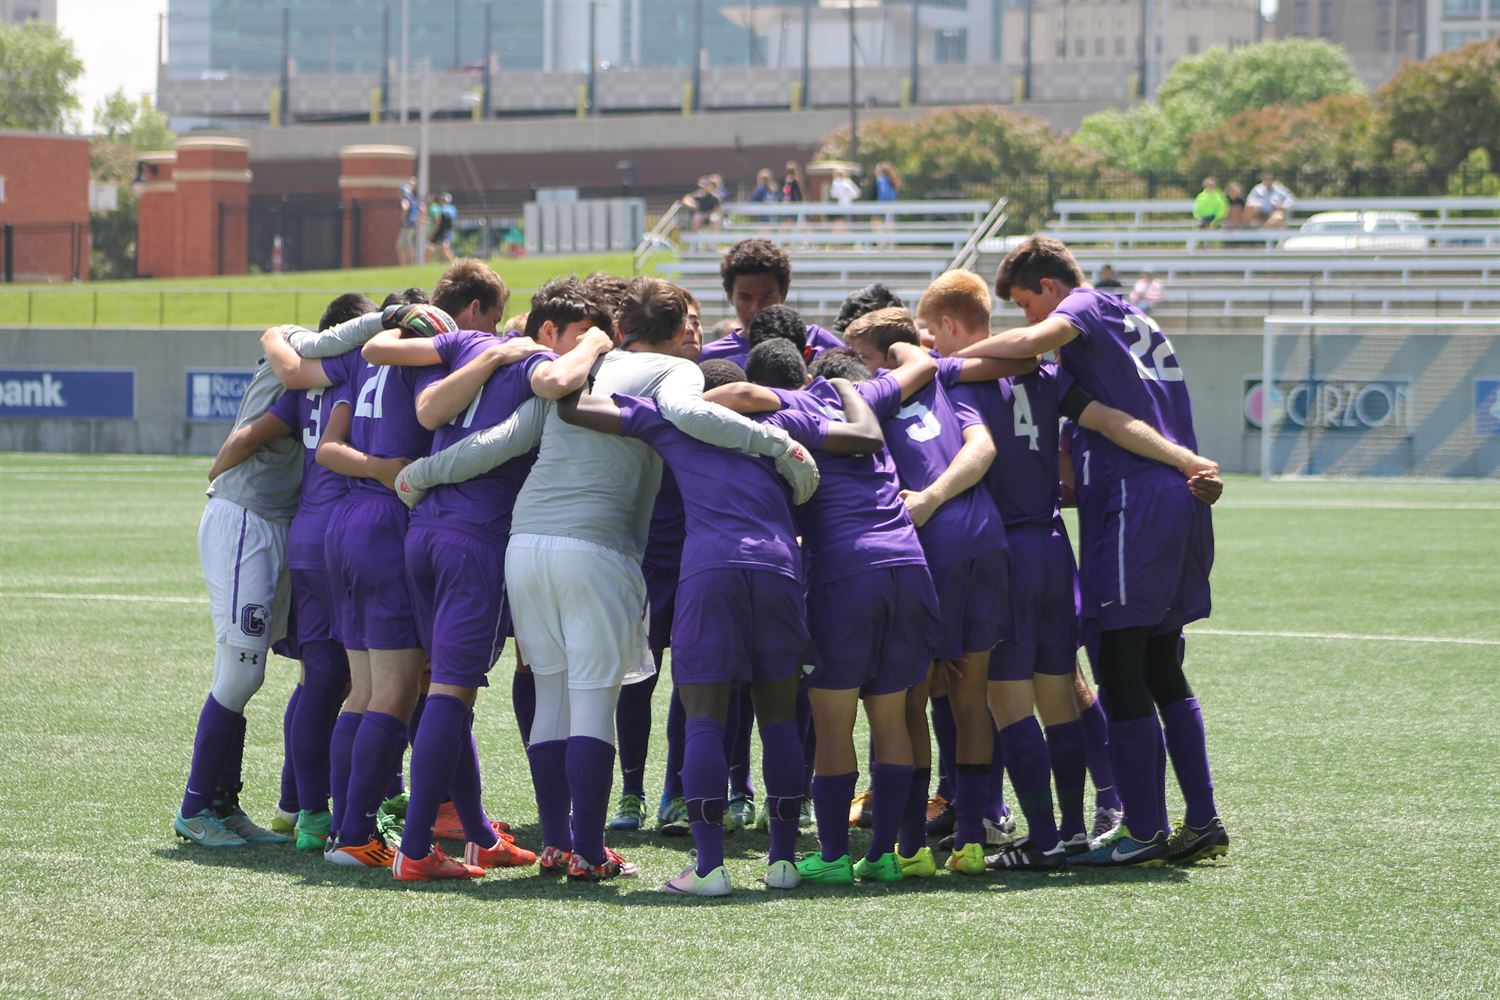 Omaha Central High School - Central Boys' Varsity Soccer